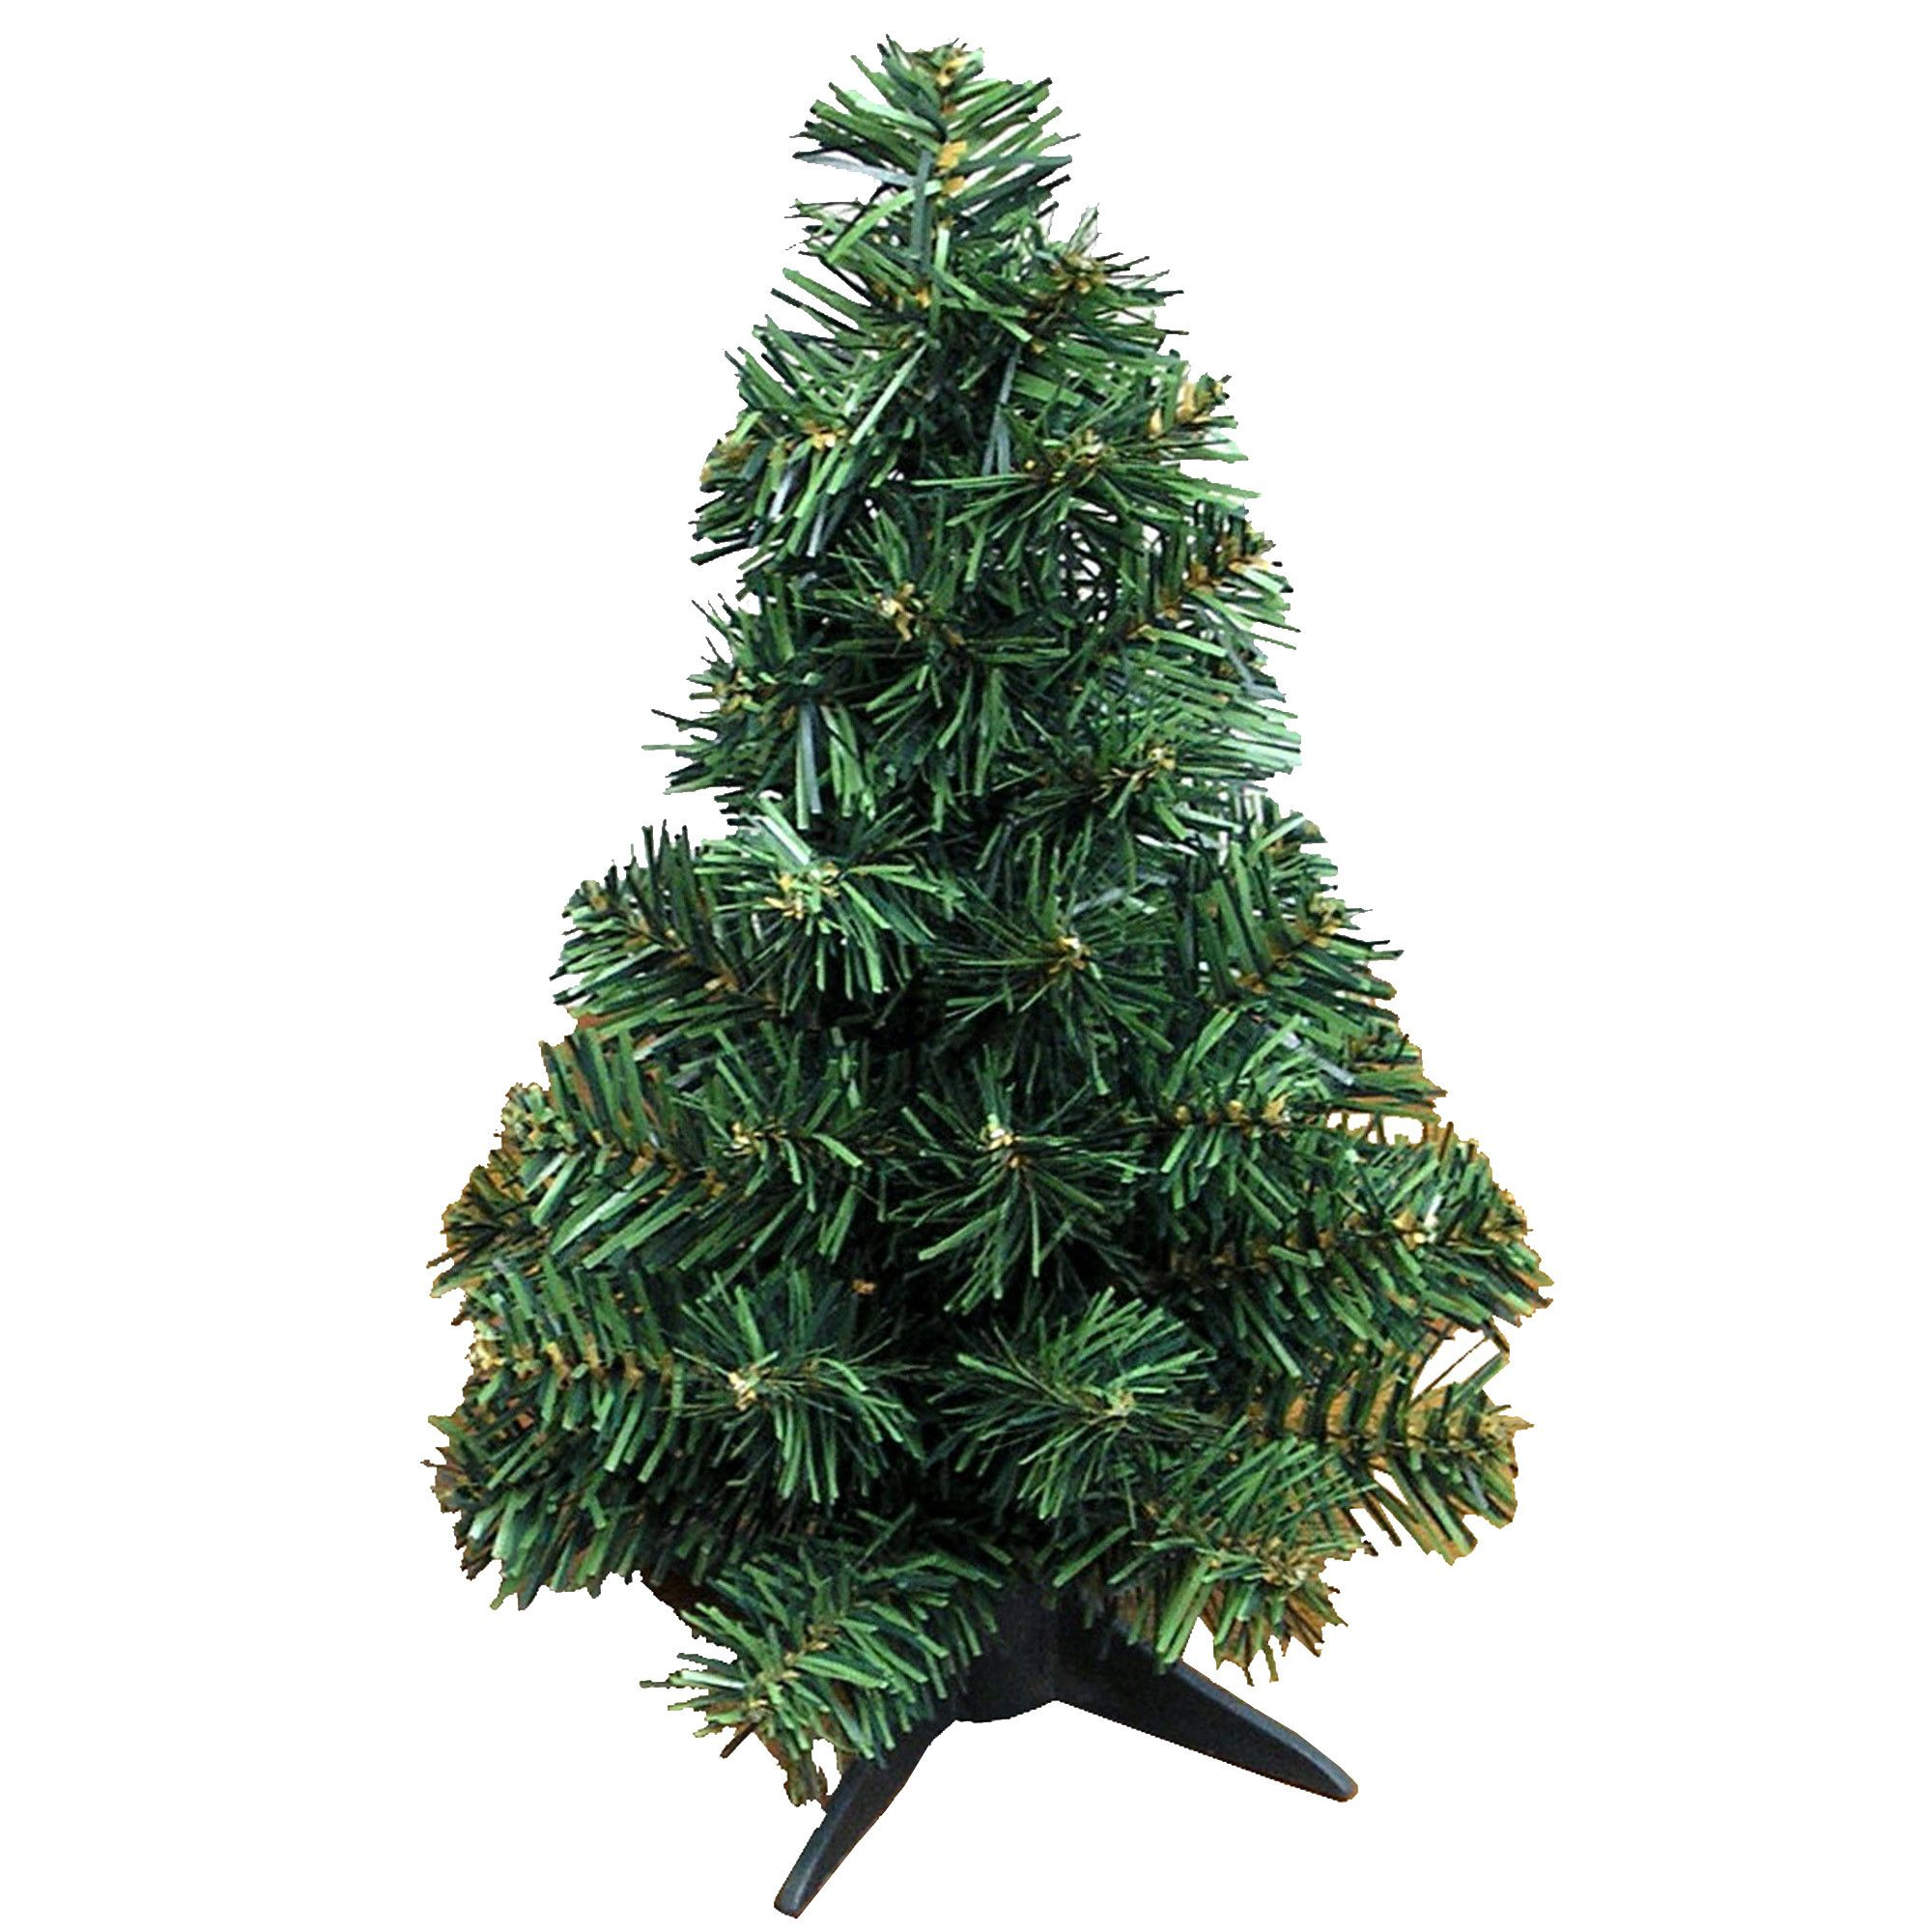 1 Green Pine Tree Artificial Canadian Christmas With Plastic Stand